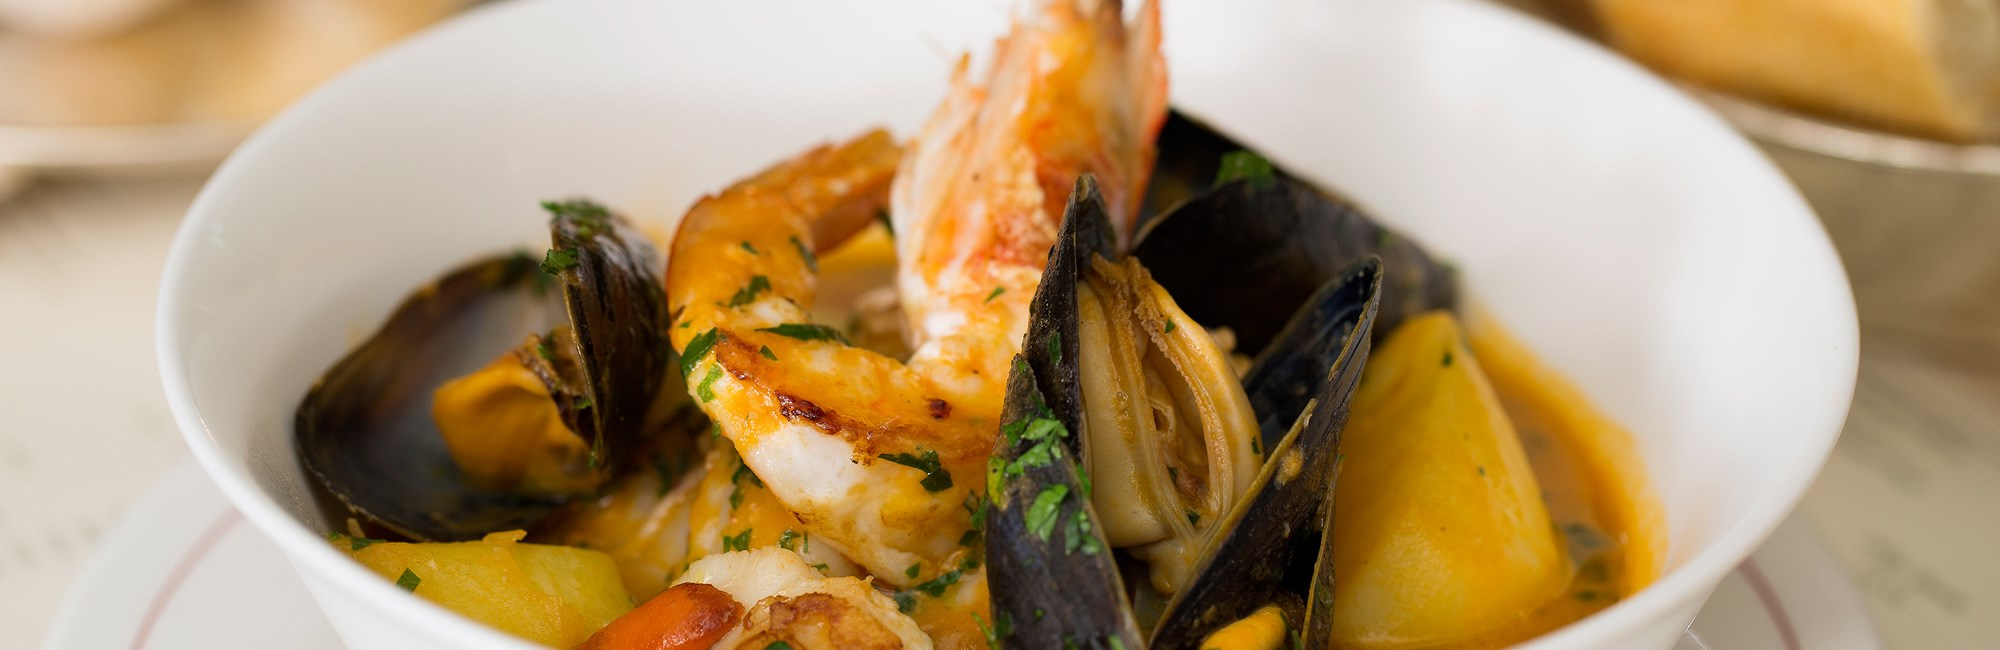 Seafood and Fish Restaurant near Covent Garden, J Sheekey Atlantic Bar